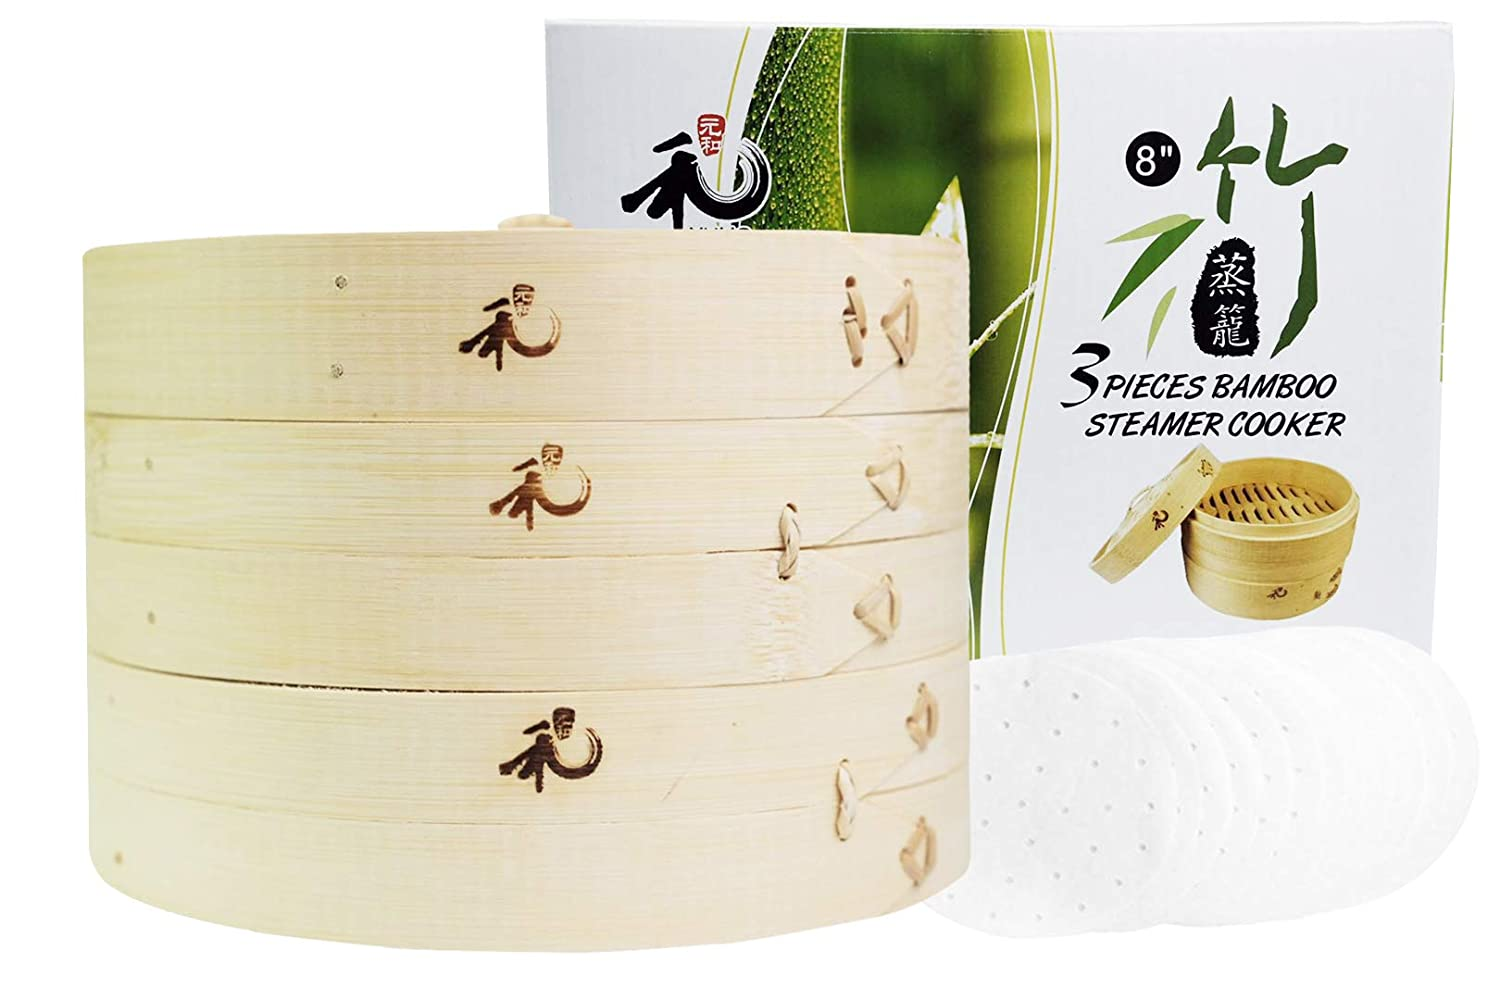 10 Parchment Liners Inch Meat Vegetables Perfect For Steaming Dumplings Yuho Asian Kitchen Bamboo Steamer 6 Rice 100/% Natural Bamboo Fish 2 Tiers /& Lid Individually Box Healthy Lifestyle